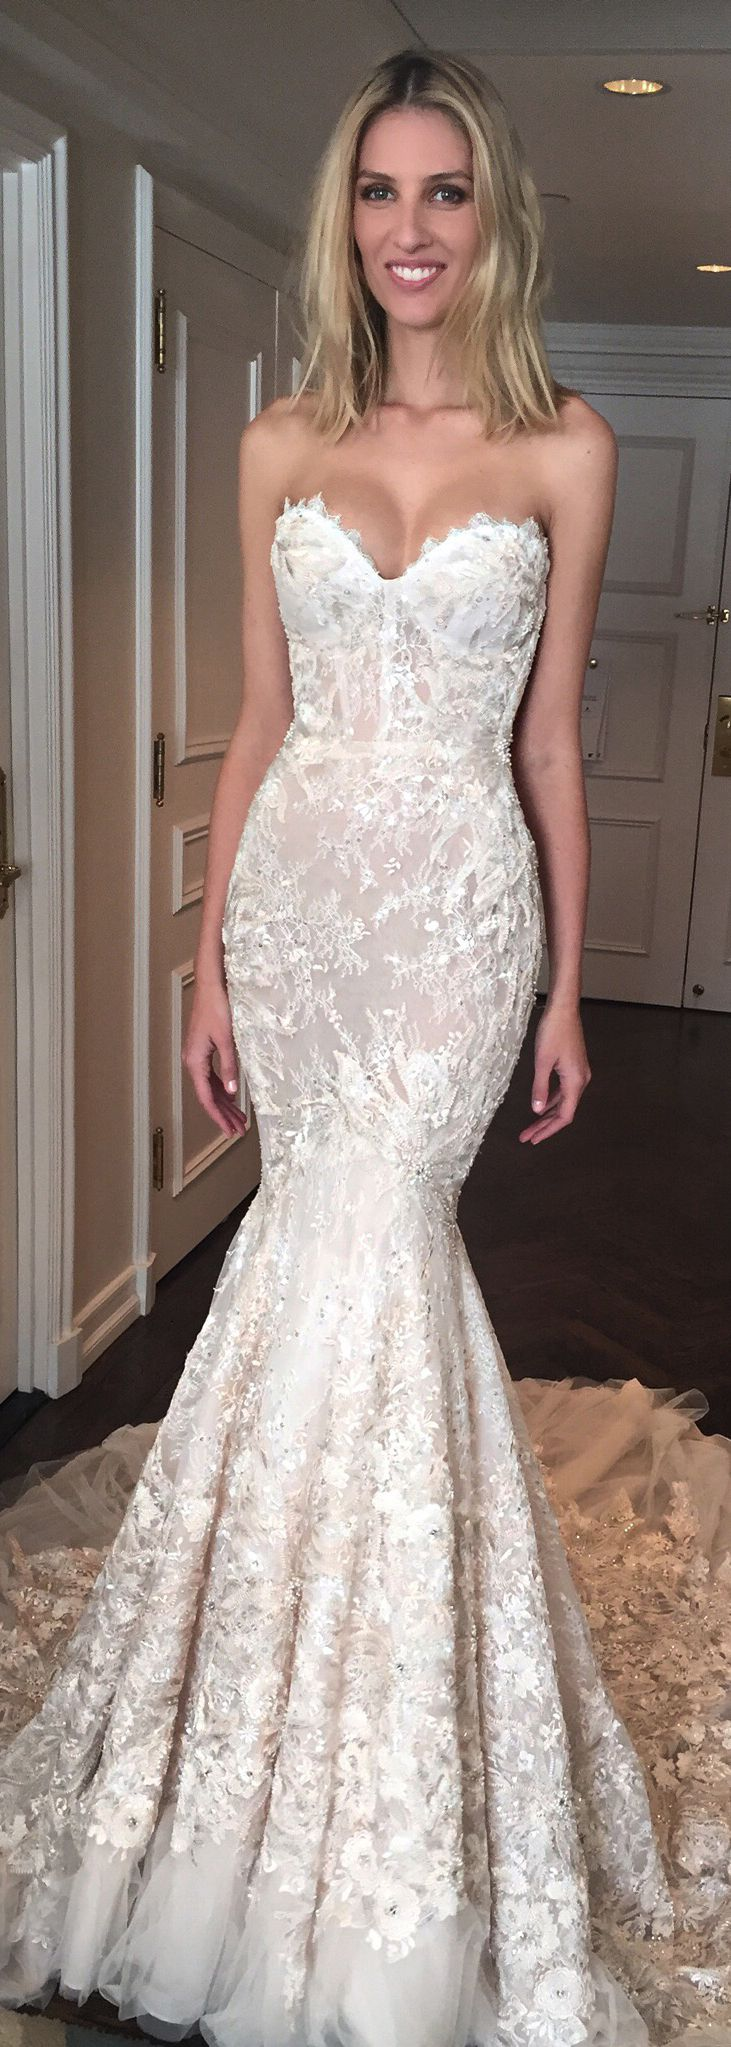 Nice Strapless slim fitted wedding dress with a sweetheart neckline